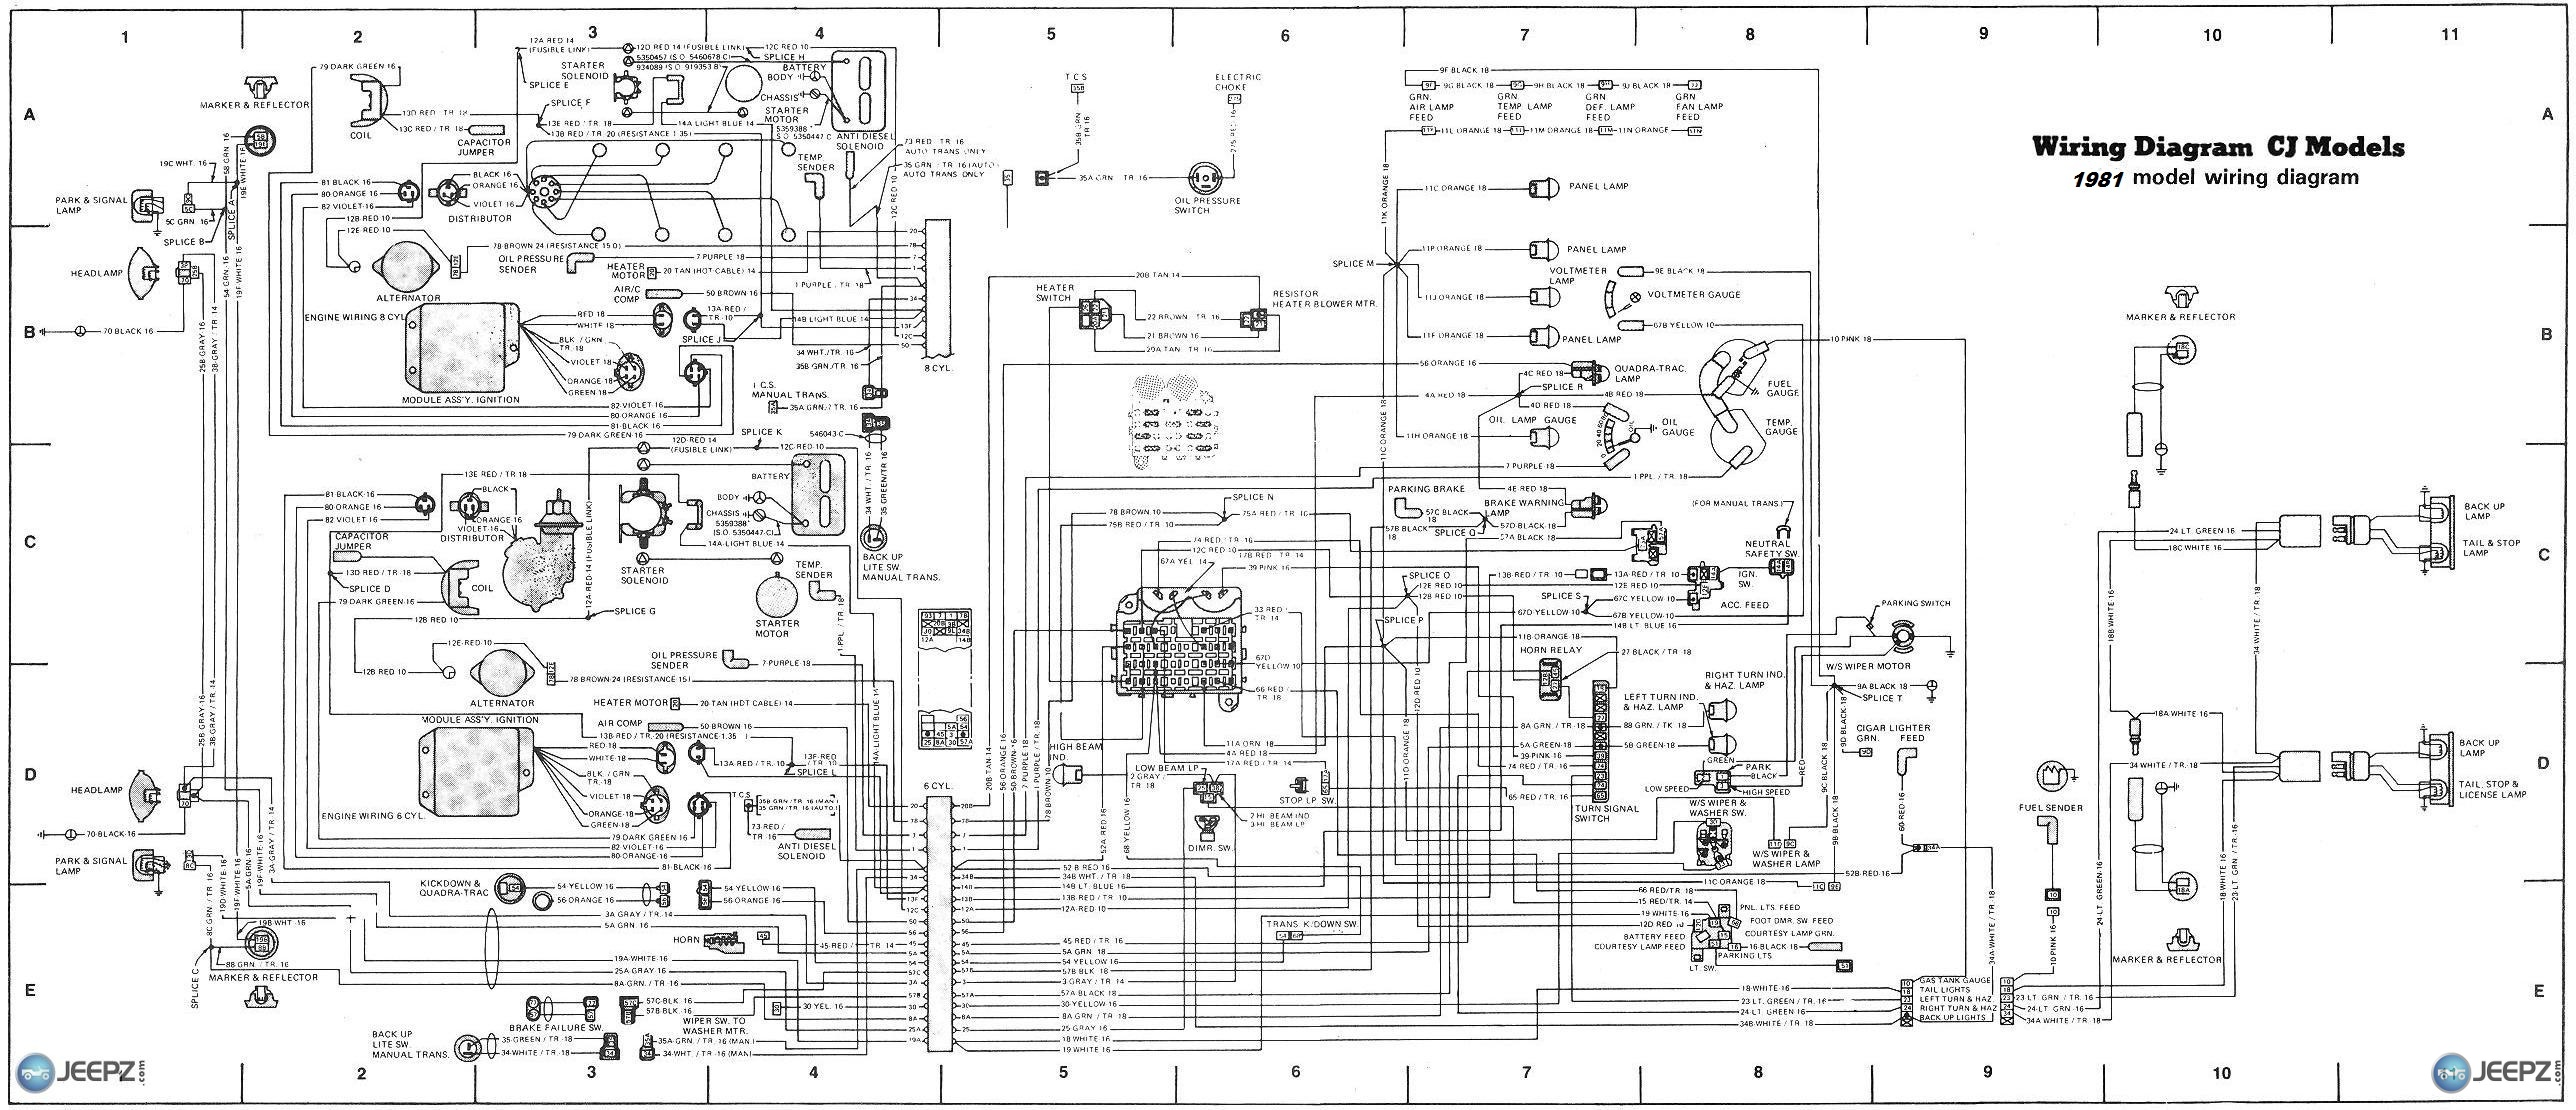 7993d1301845049 cj 7 wire diagram cj wiring diagram 1981 1978 jeep cj7 wiring diagram electrical wiring for 78 jeep cj5 cj3a wiring diagram at n-0.co